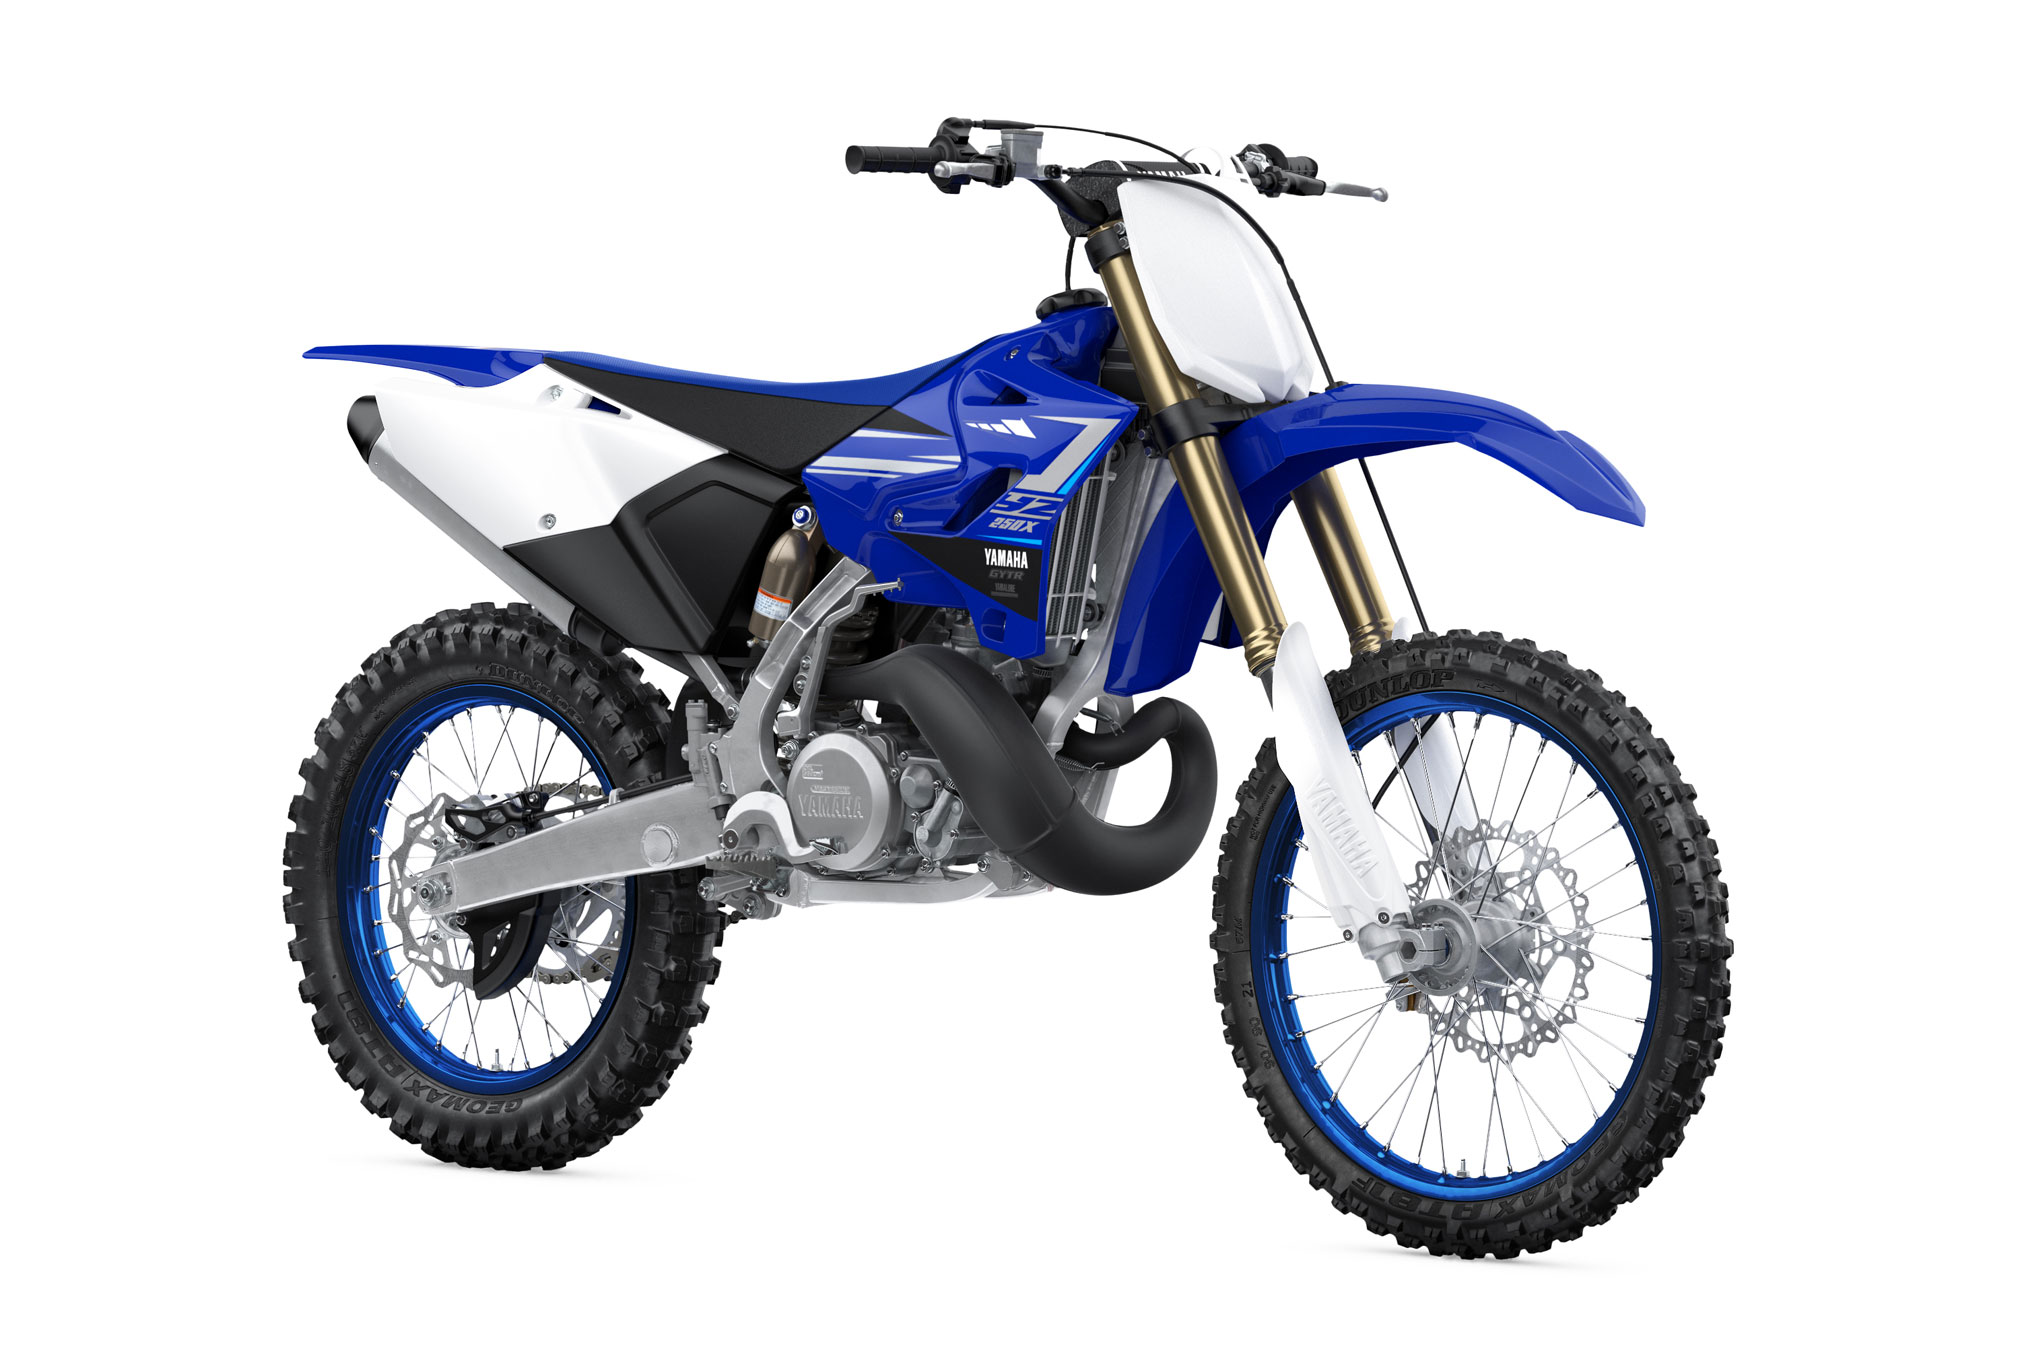 2020 Yamaha YZ250X Guide • Total Motorcycle